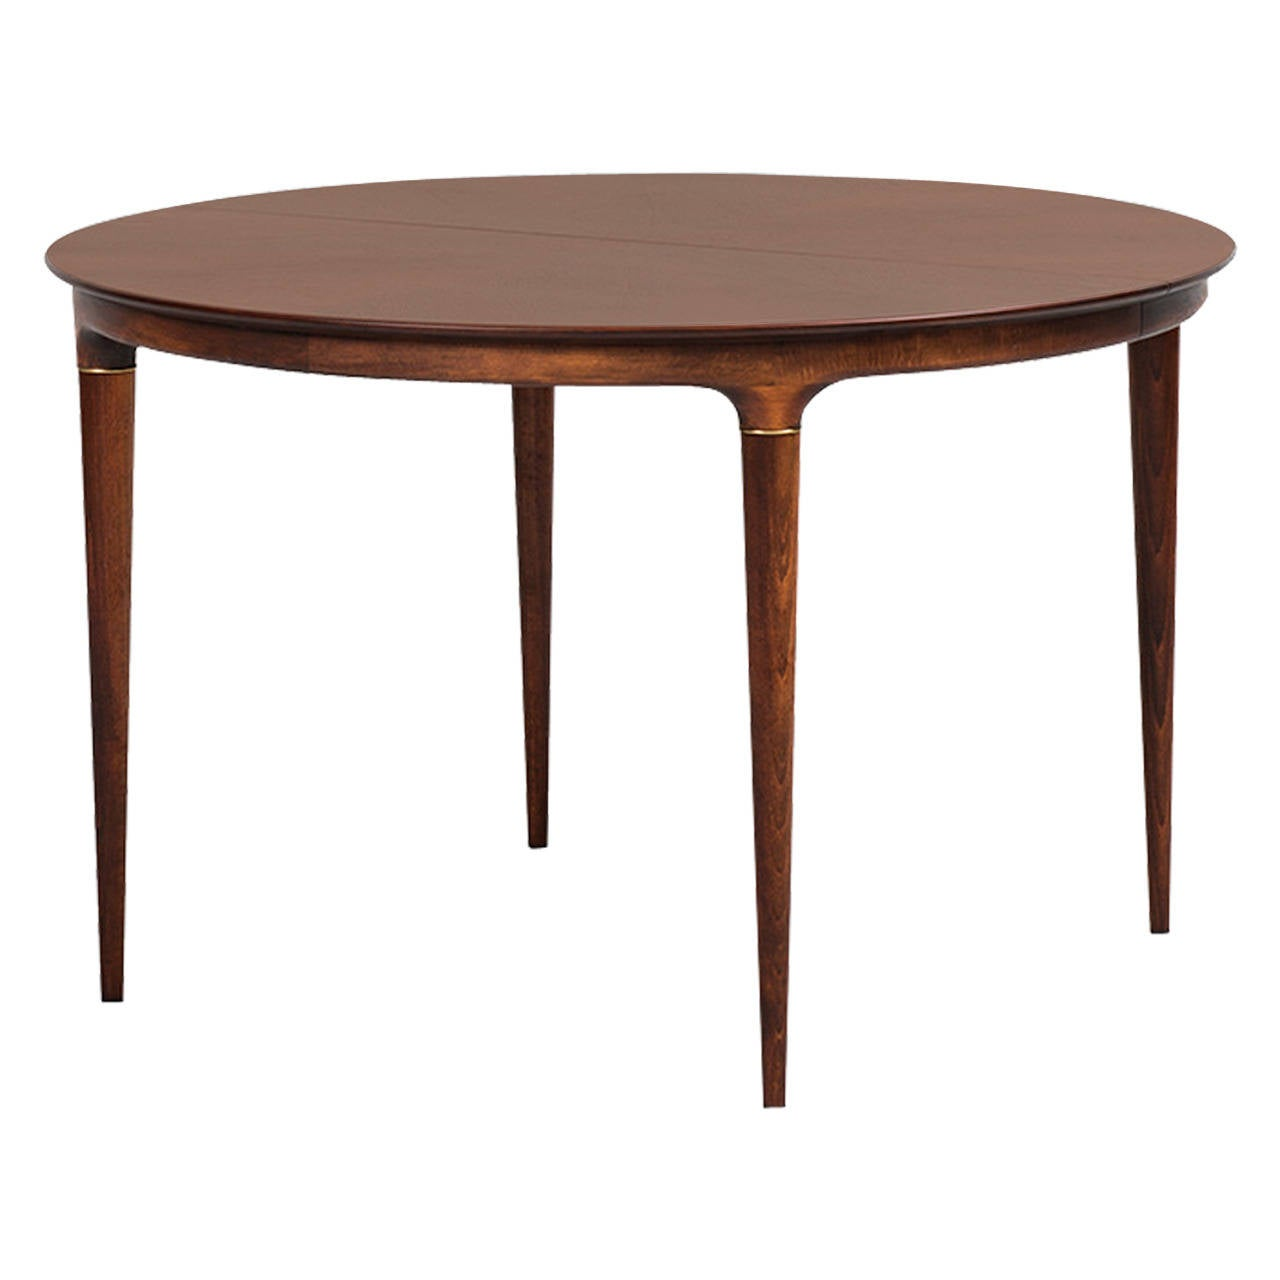 Svante skogh dining table model cortina in rosewood and for Dining table models